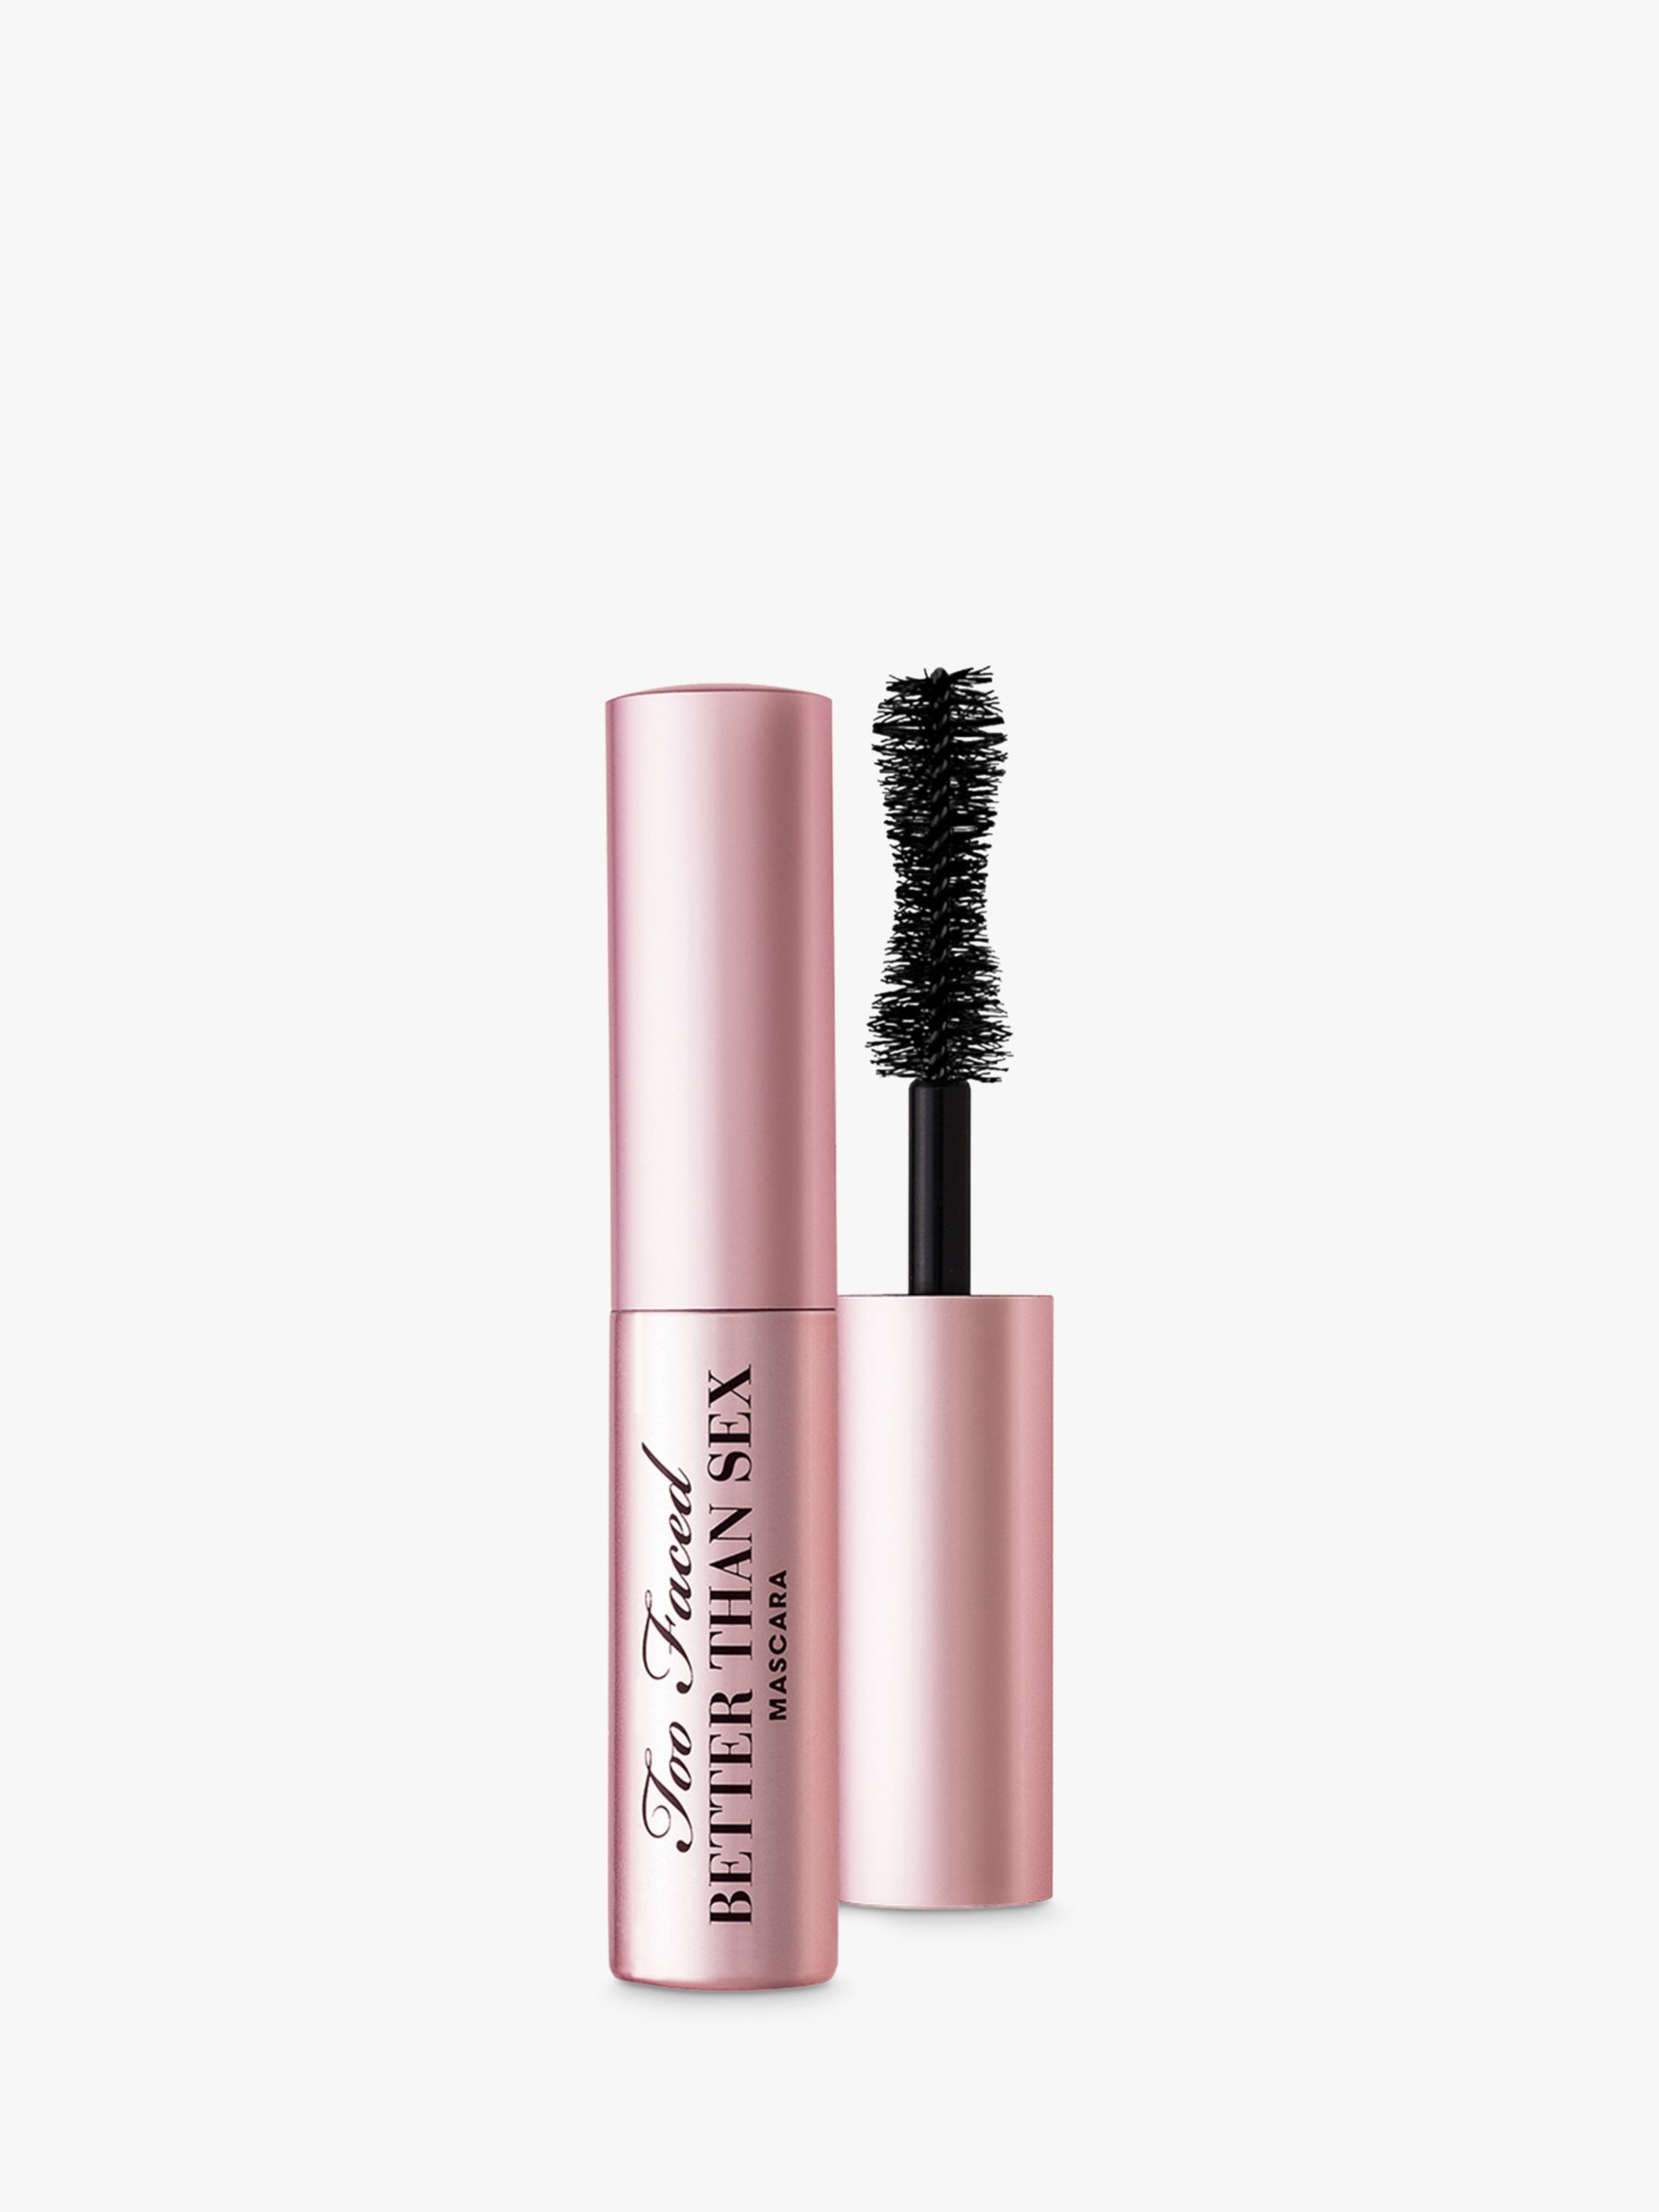 Too Faced Too Faced Better Than Sex Mascara, Black, 4.8ml